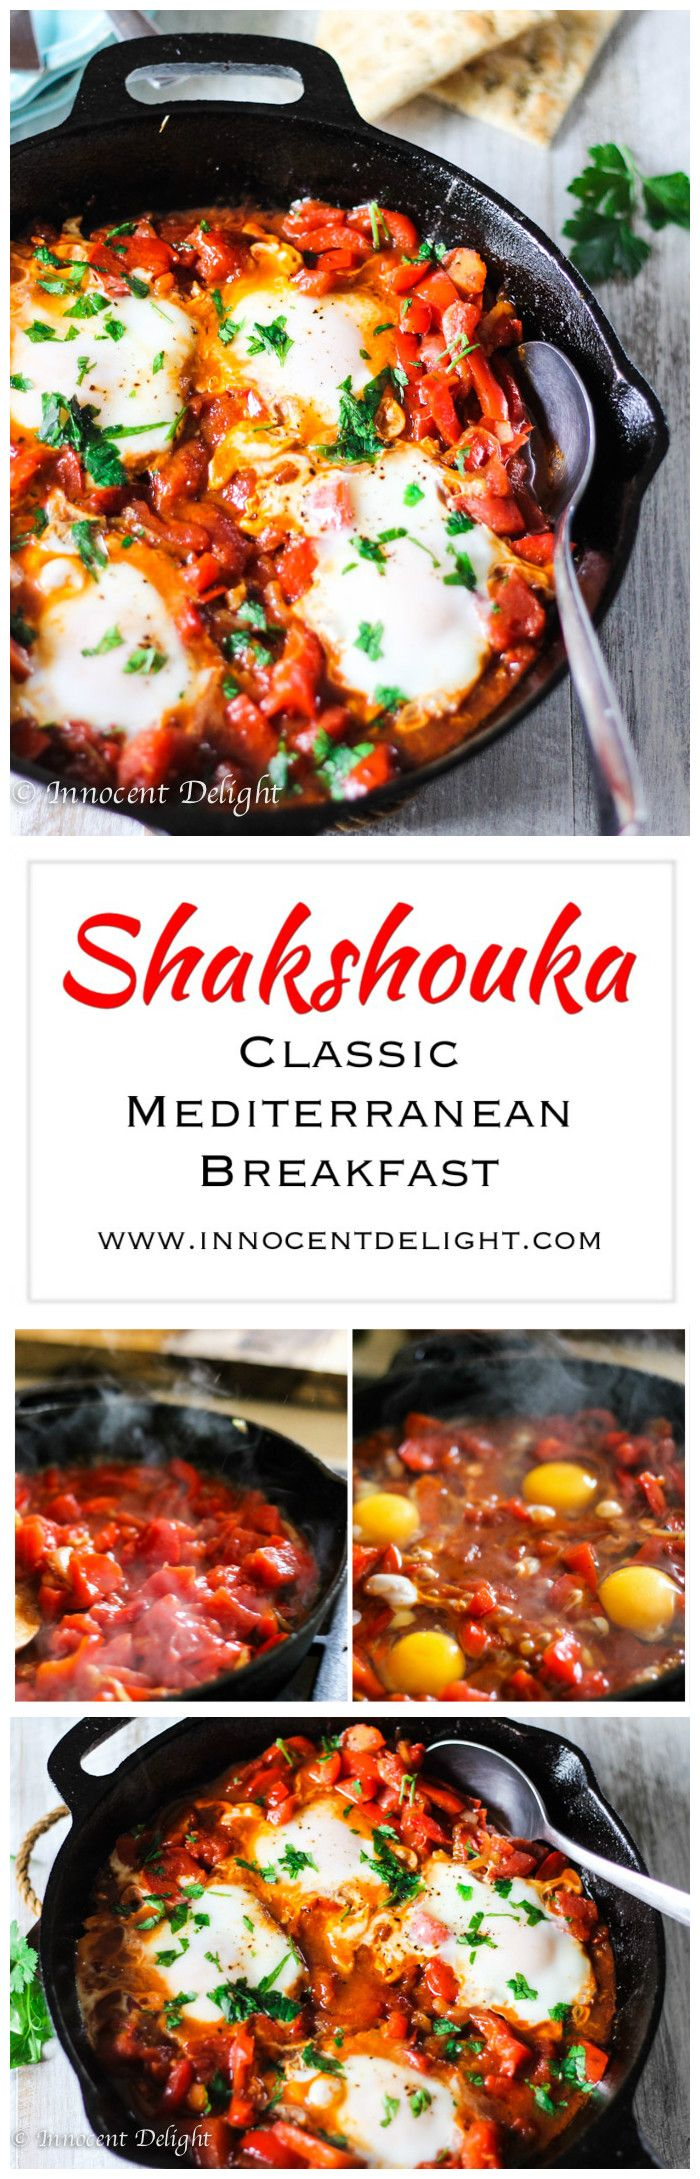 Shakshouka – Classic Mediterranean Breakfast – bell peppers and tomatoes dish on which eggs are added. Divine!